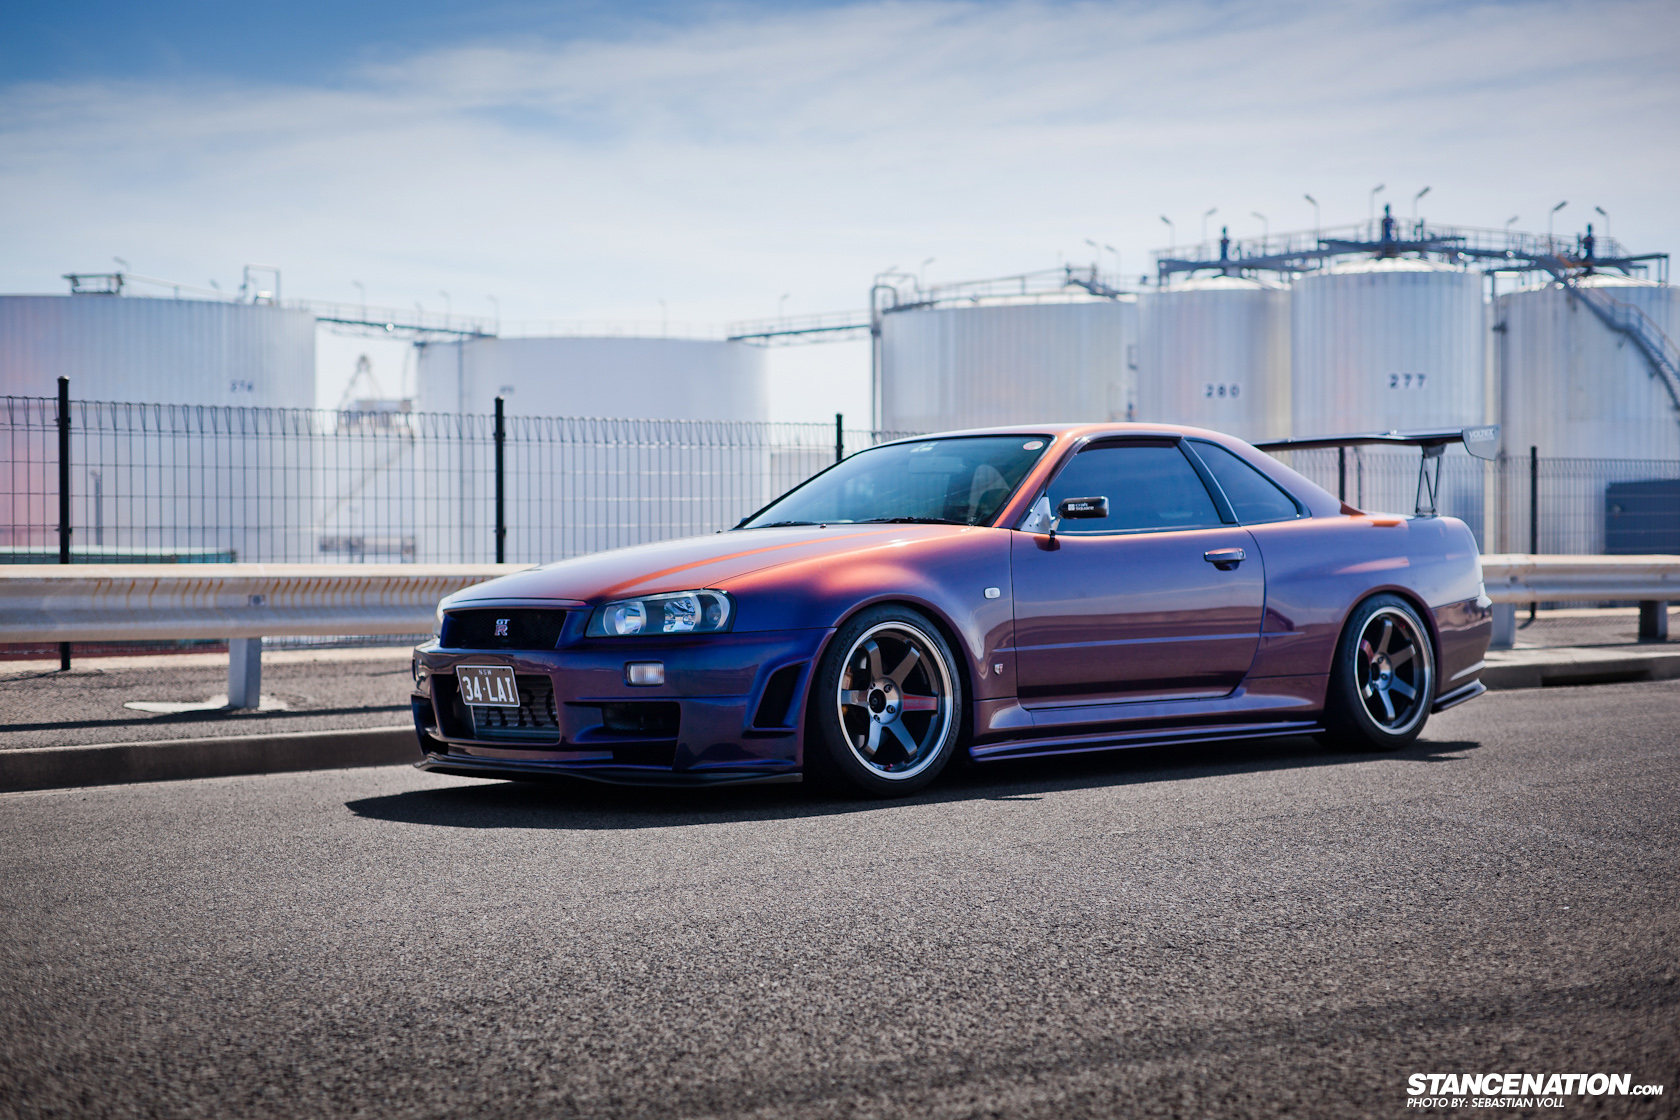 The Voltex Wing Out Back Suits The Overall Theme Of The GTR And Goes Along  With Its Natural Aggressive Nature. Big GT Wings Are Making A Come Back In  The ...